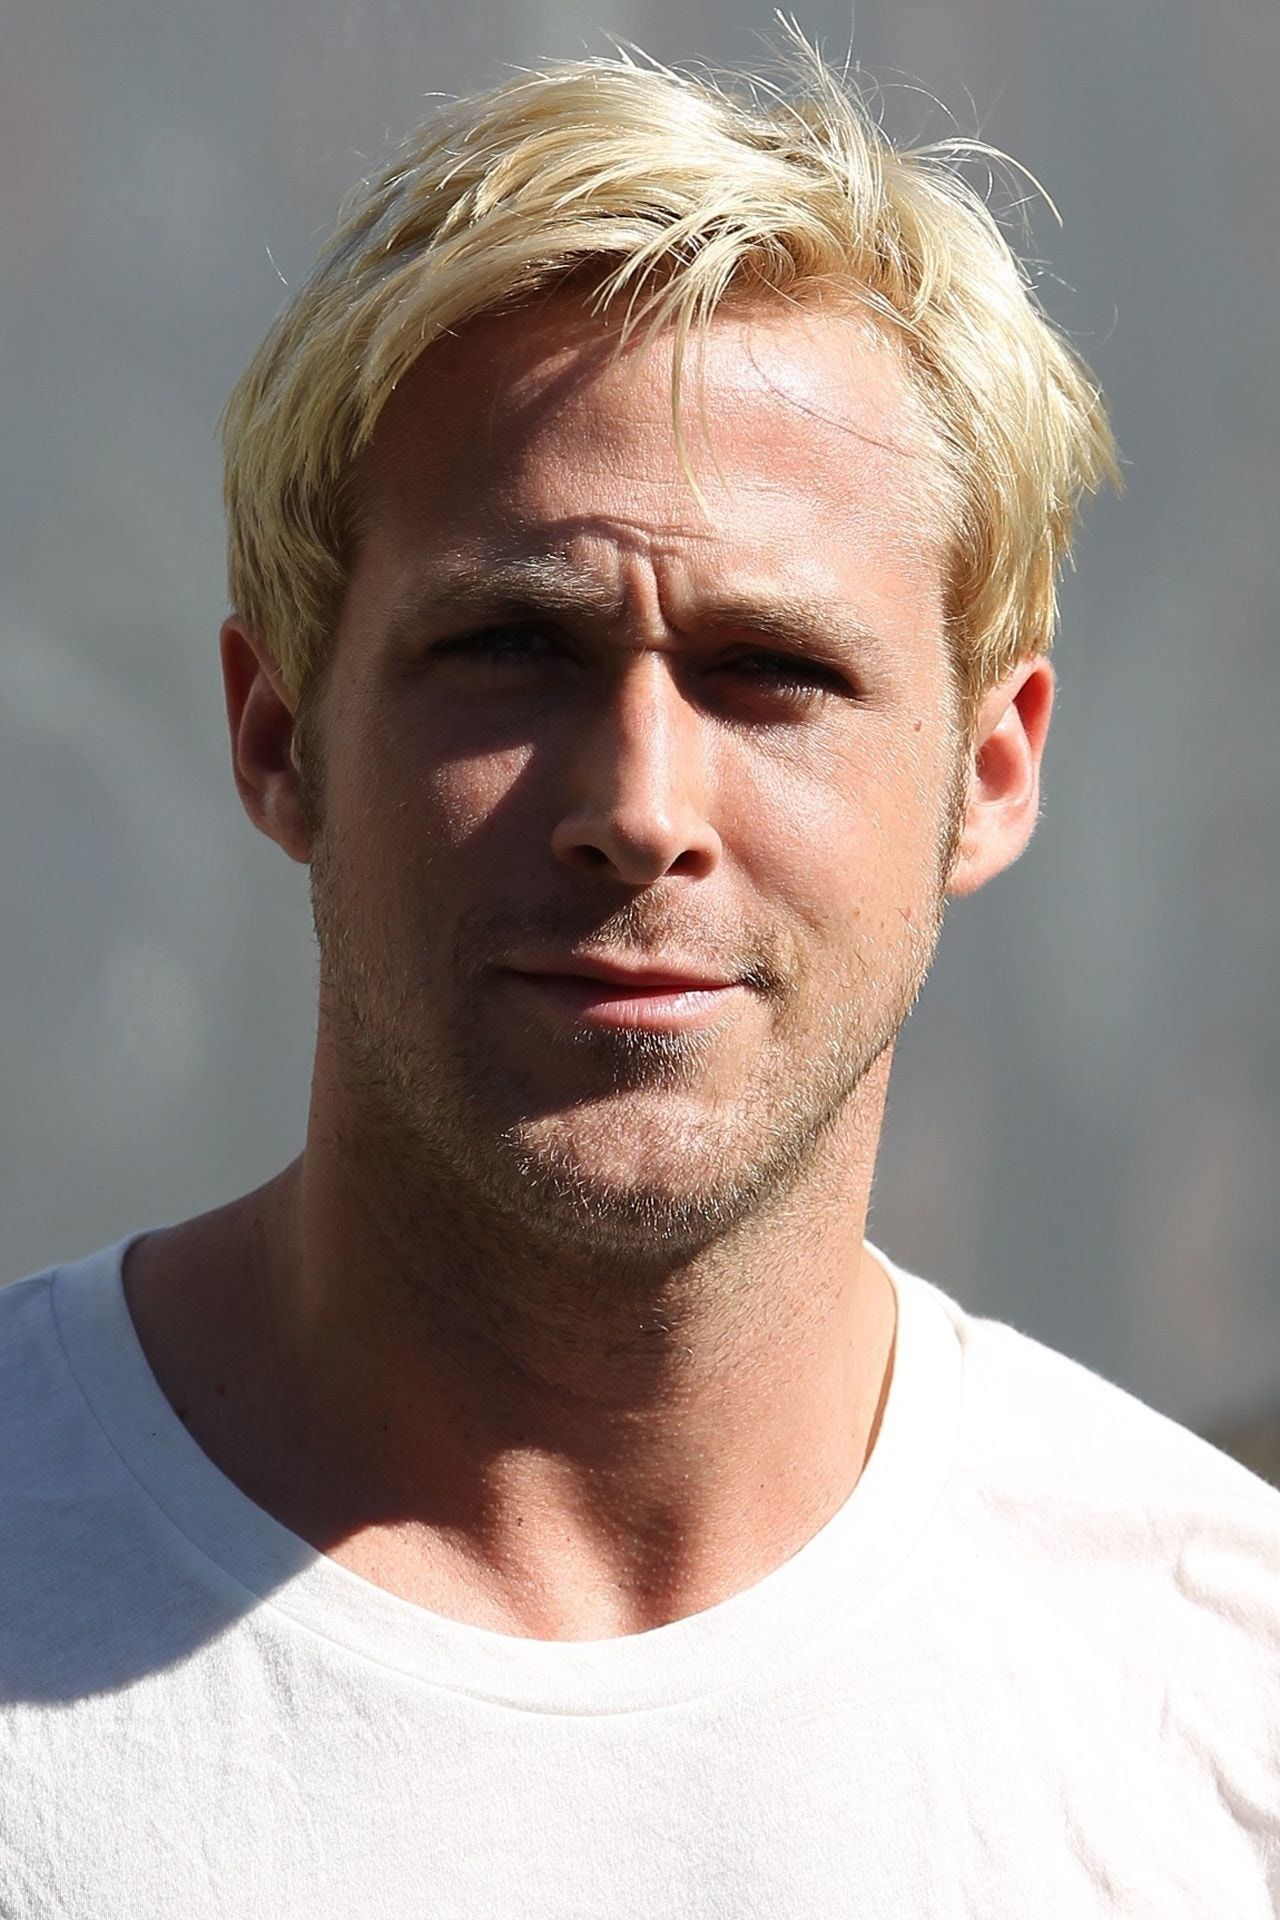 Going Blond Here Are 13 Men Who Got It Right In 2020 Bleached Hair Men Blonde Guys Bleach Blonde